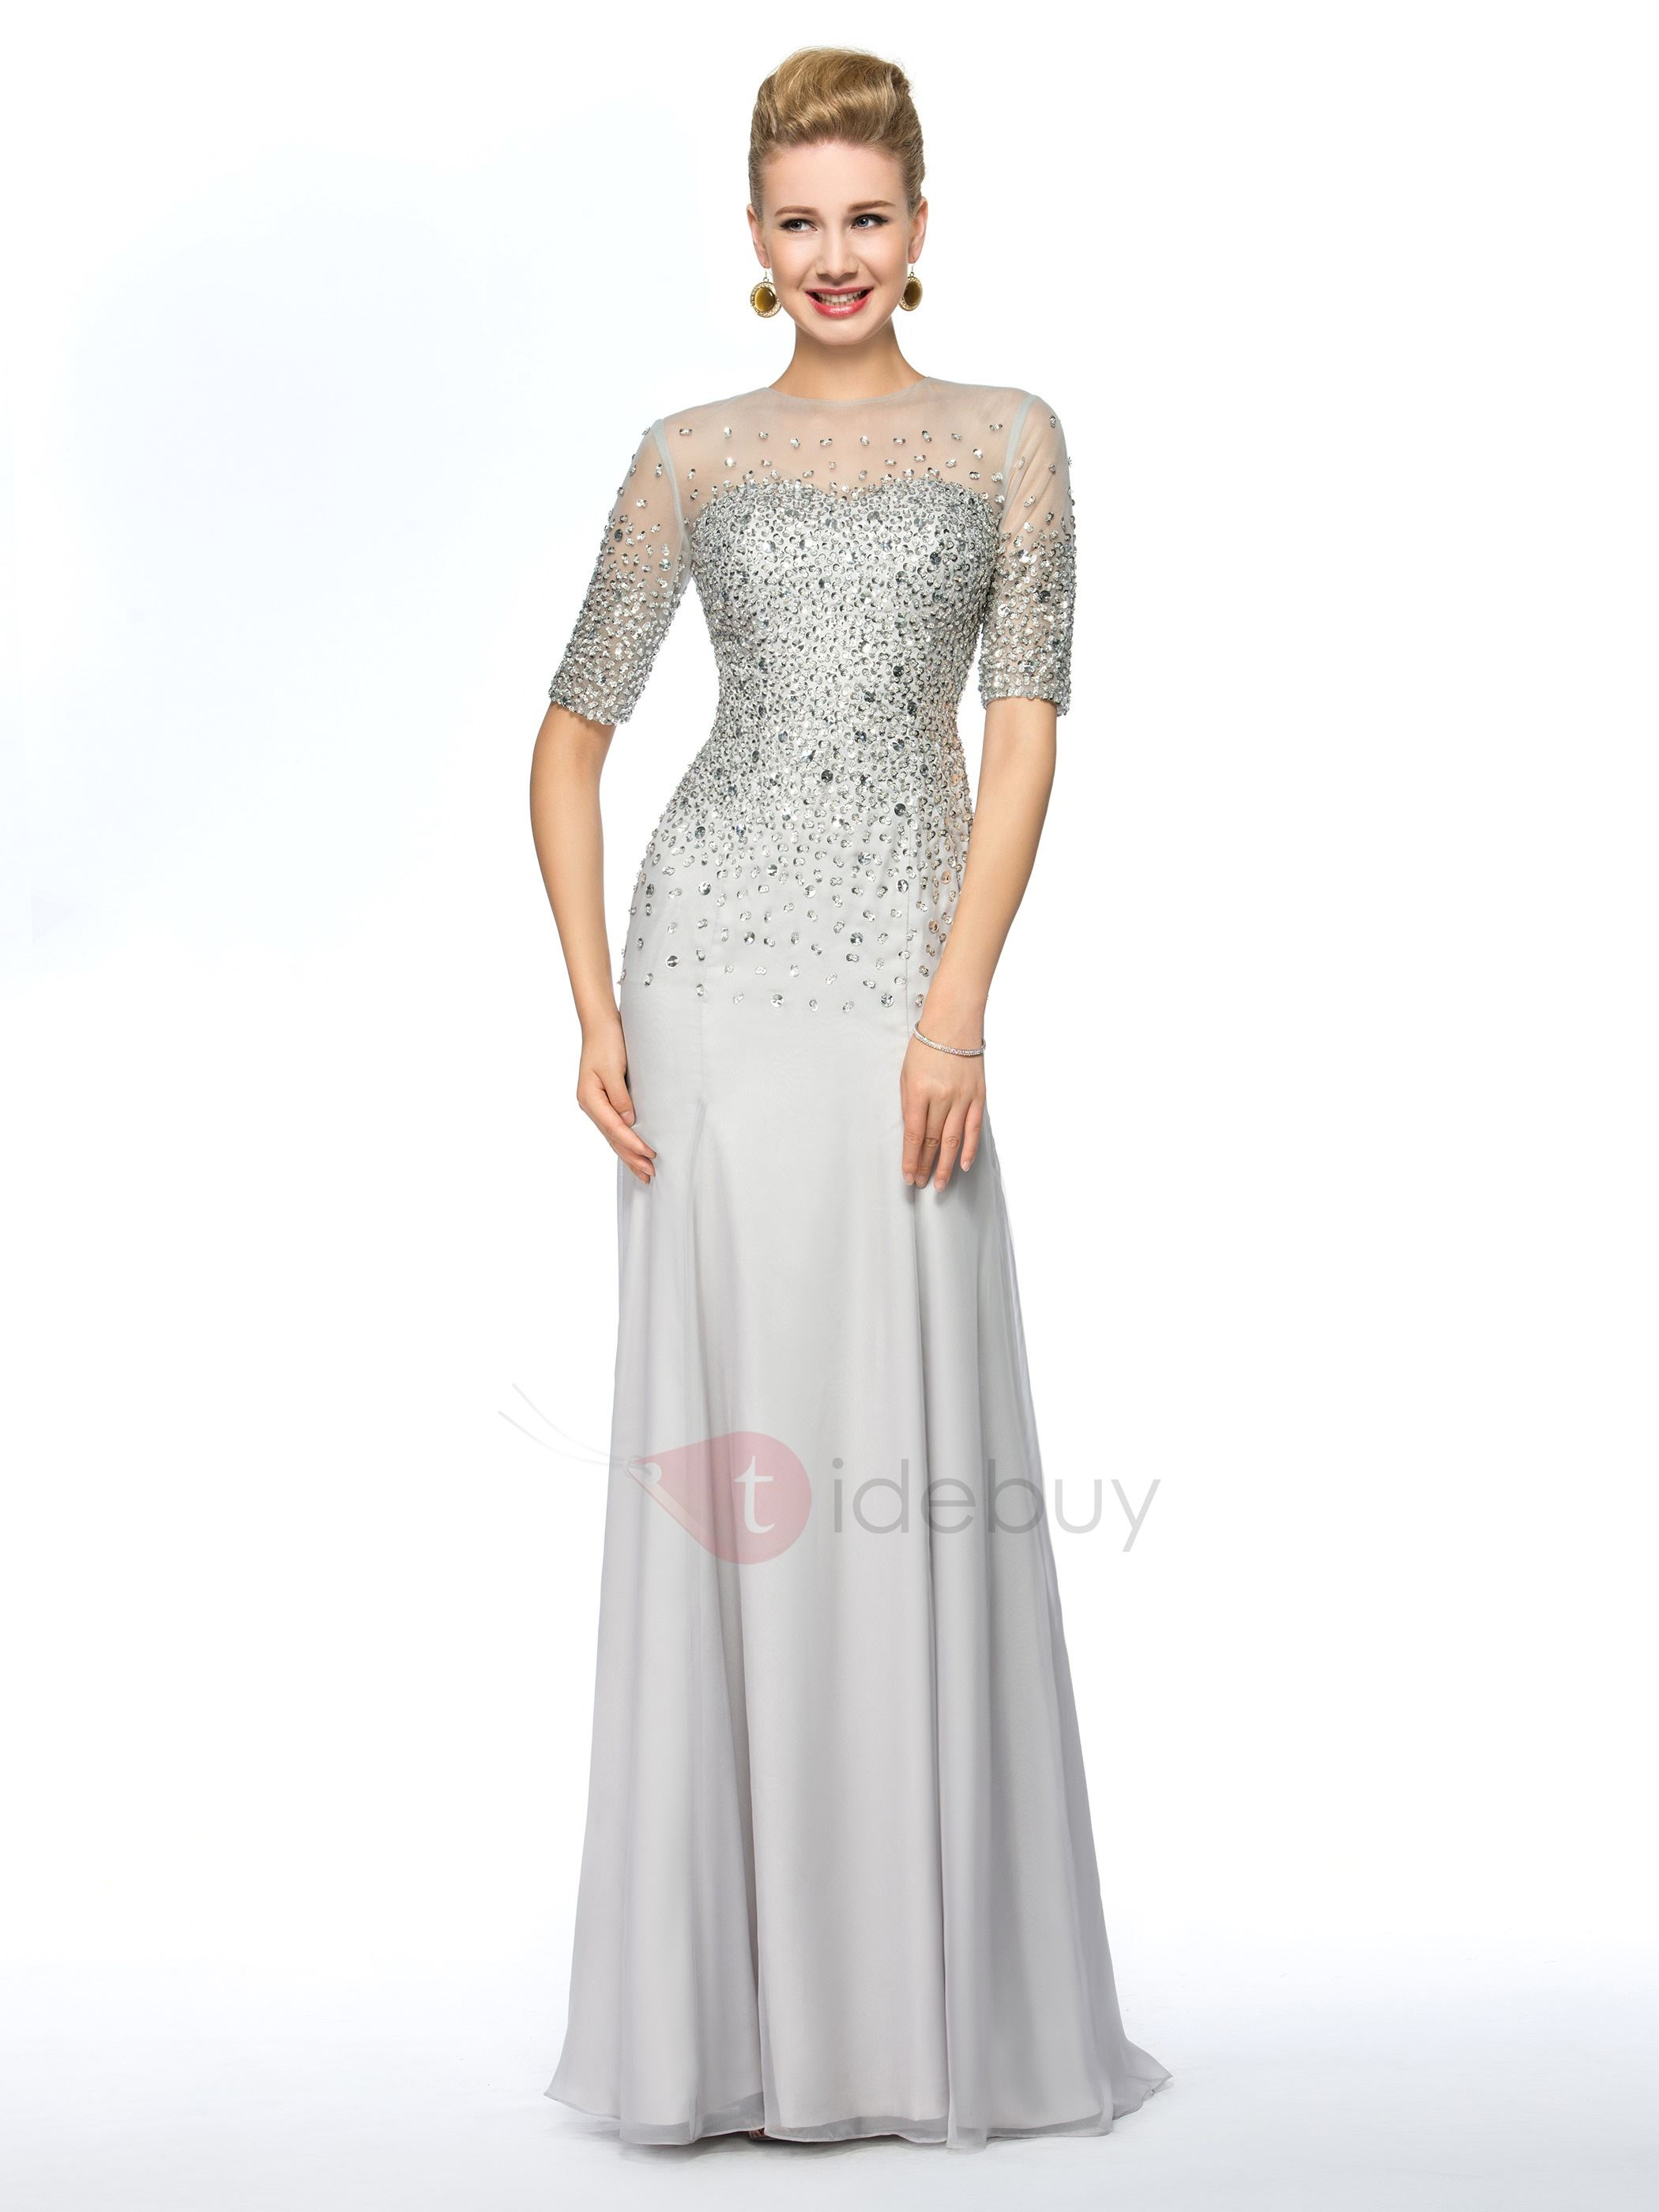 2016 Petite Mother of the Bride Dresses & Gowns Collection : Tidebuy.com